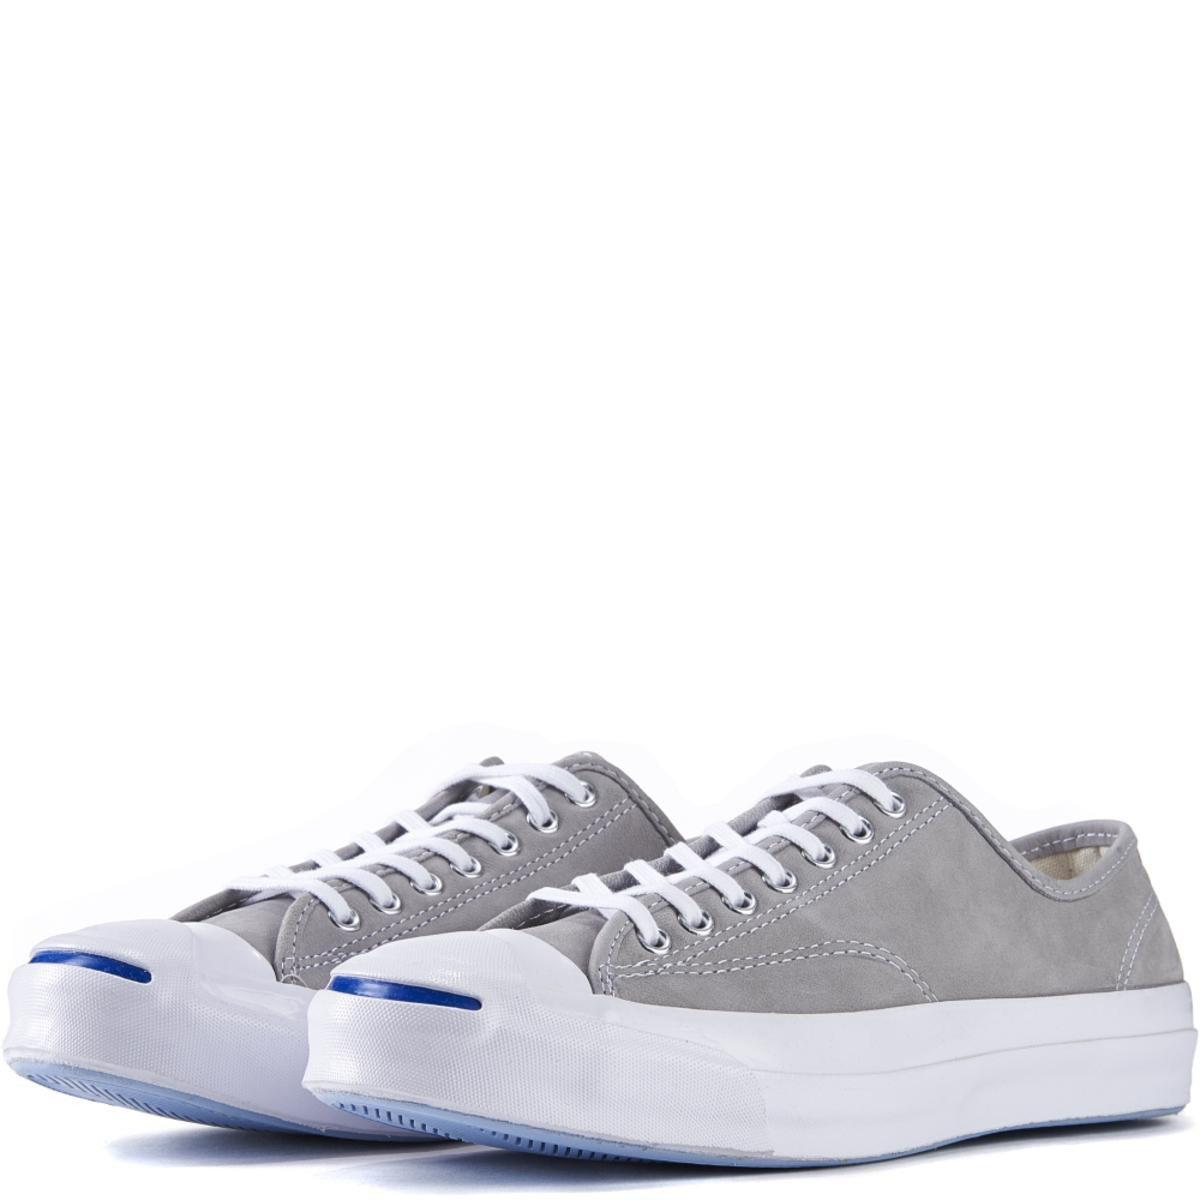 05114e61aeca39 Converse - Jack Purcell Signature Nubuck Dolphin White Sneakers for Men -  Lyst. View fullscreen